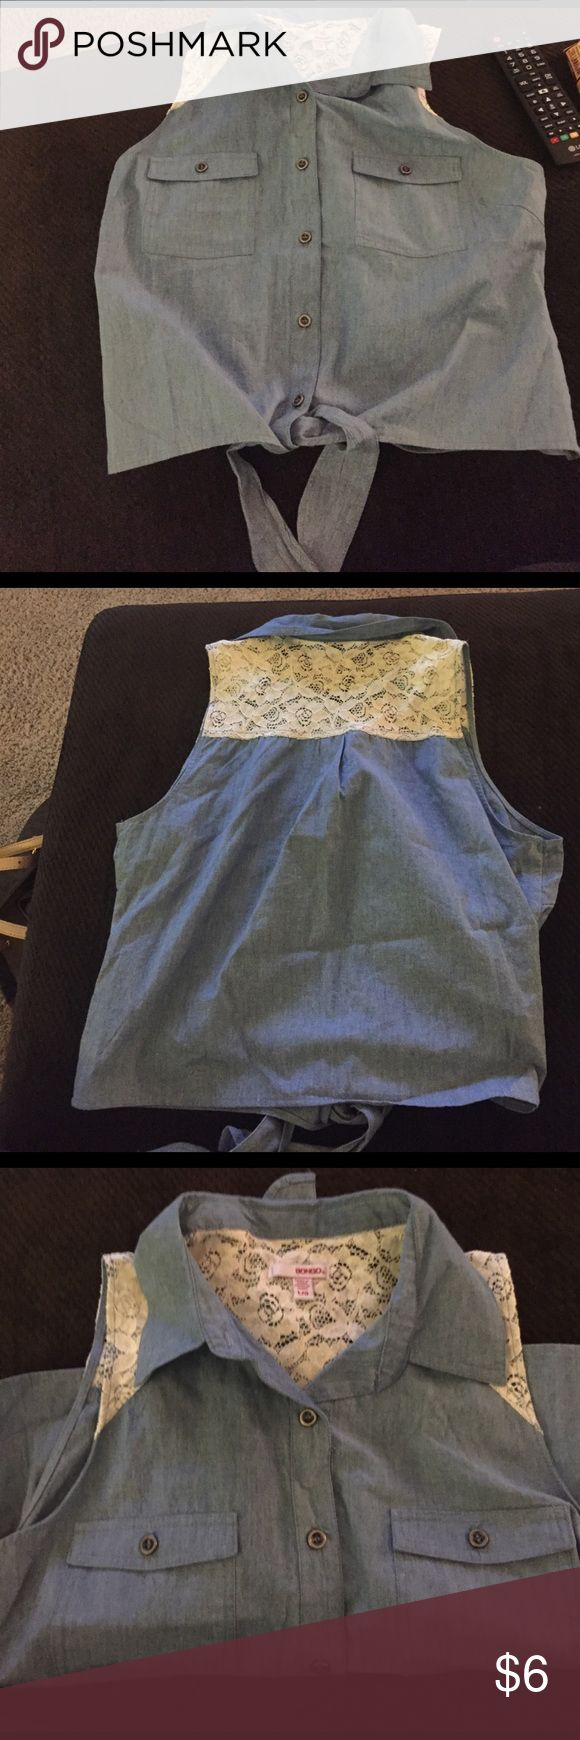 Sleeveless denim shirt Sleeveless denim button up shirt with lace material on the back on top. Never worn. Tops